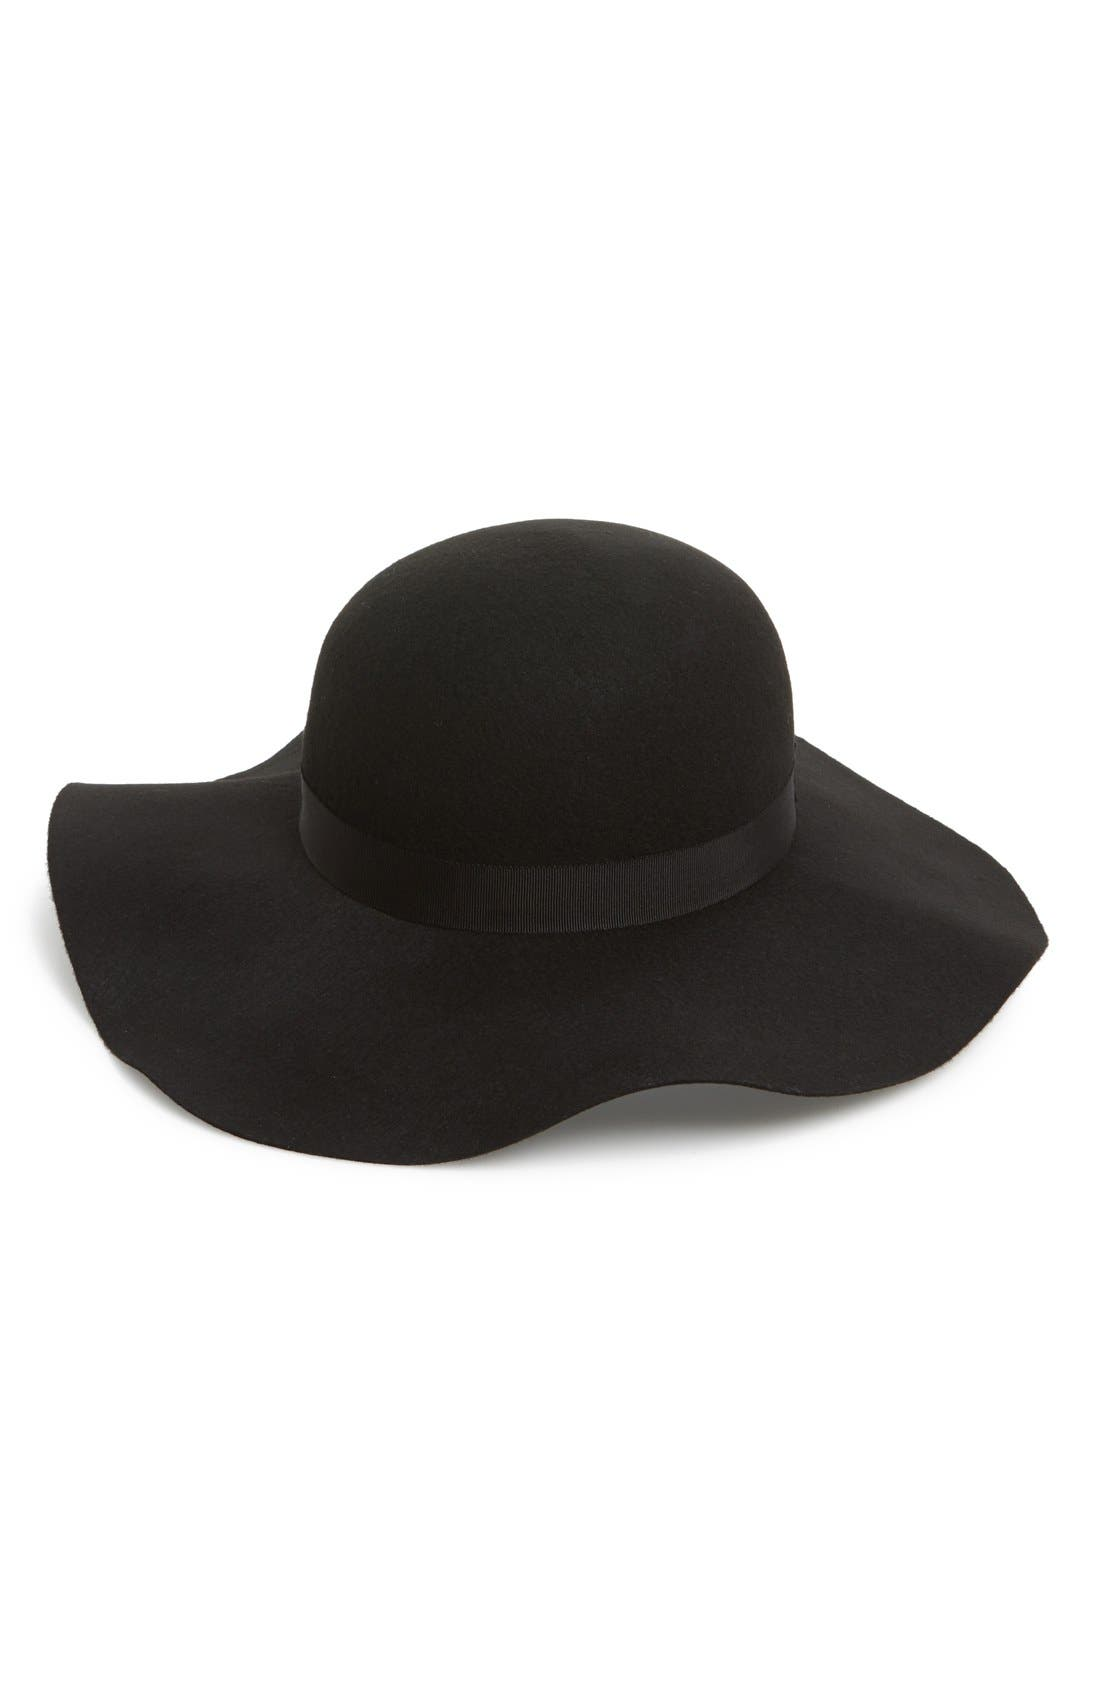 Alternate Image 1 Selected - Topshop Floppy Felt Hat